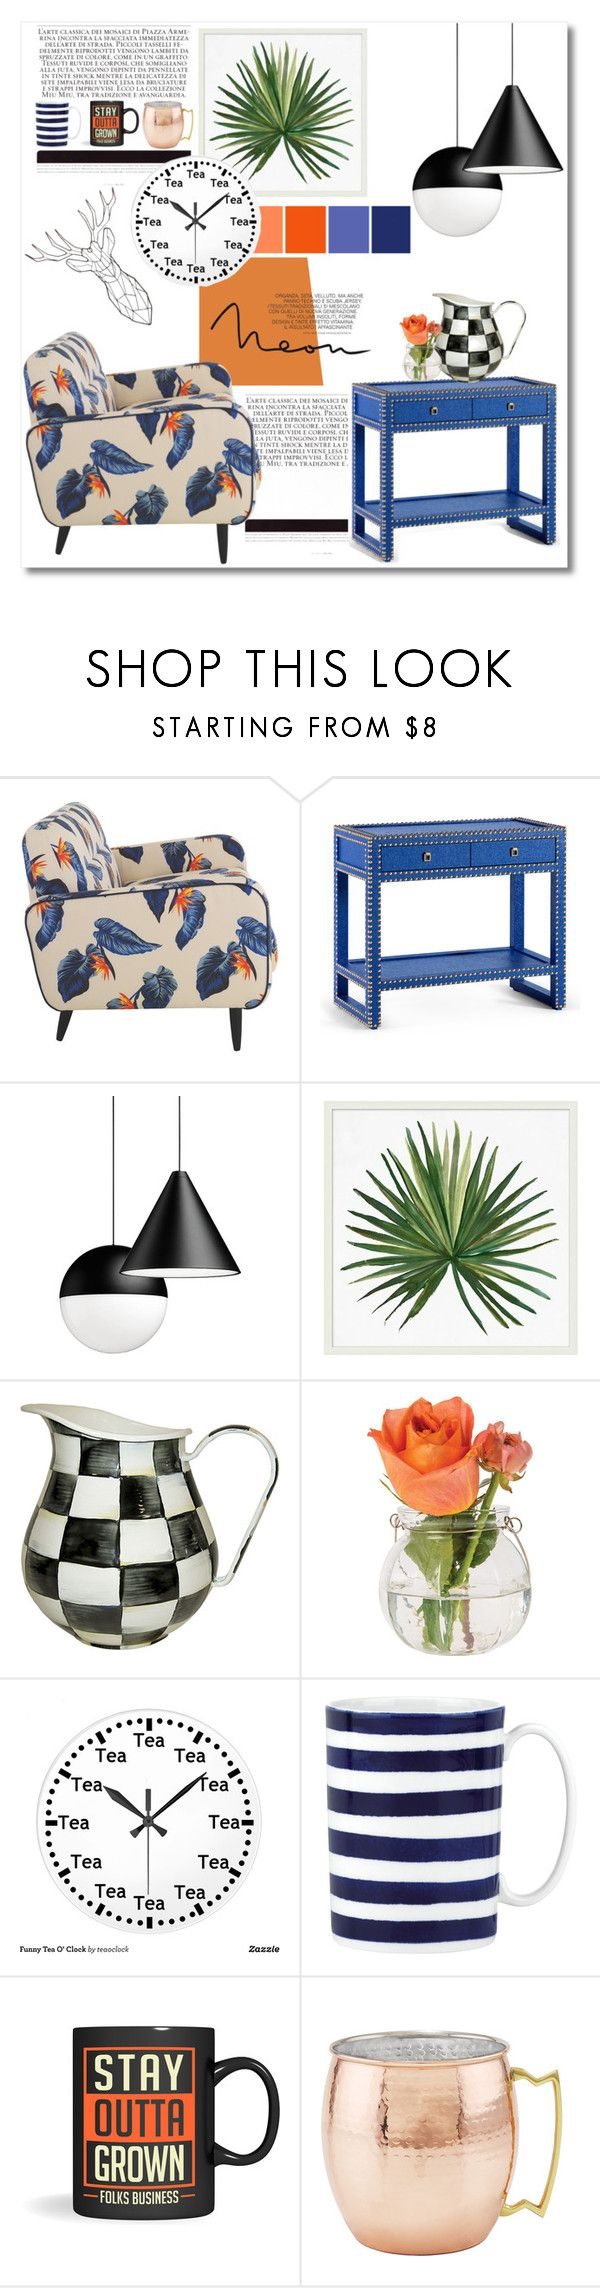 """Untitled #424"" by zalarupar ❤ liked on Polyvore featuring interior, interiors, interior design, home, home decor, interior decorating, House of Holland, Bungalow 5, Pottery Barn and MacKenzie-Childs"